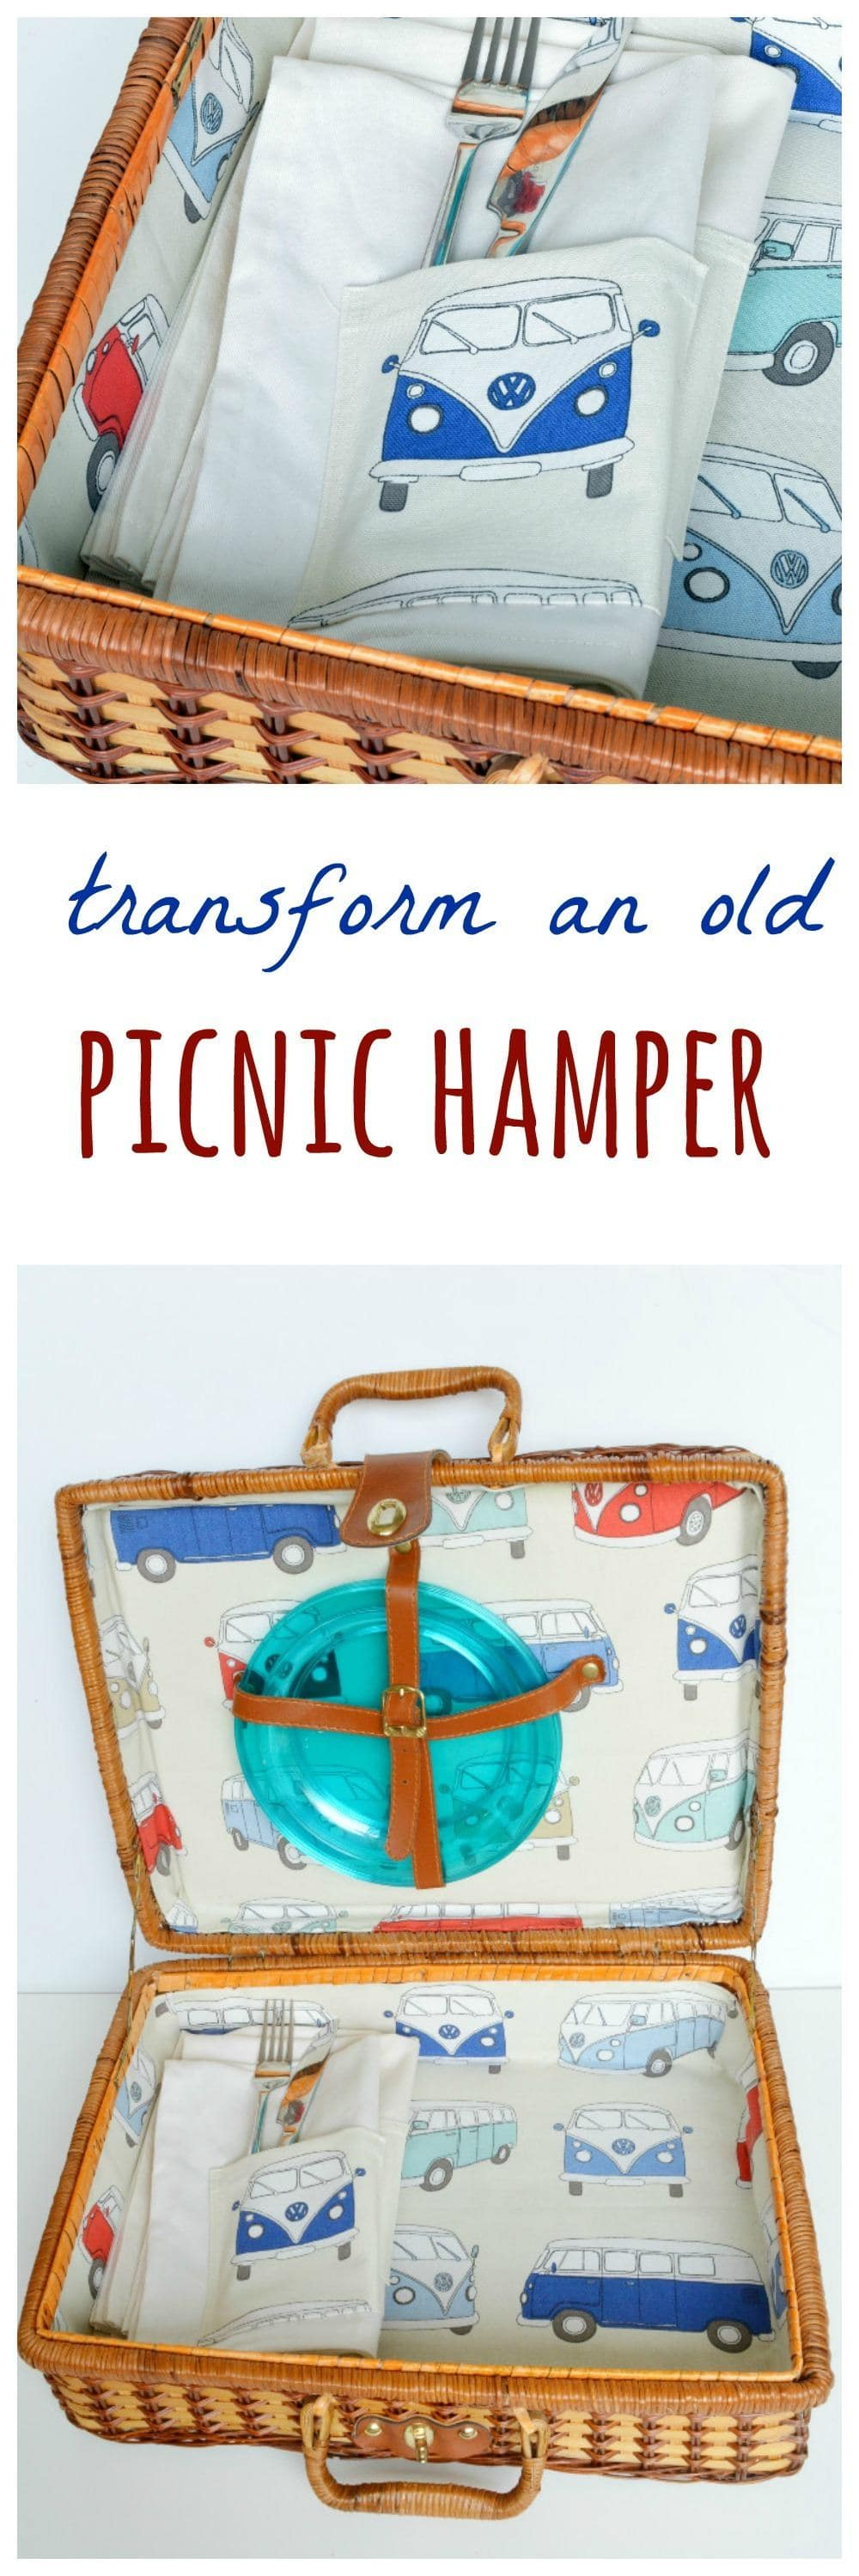 How to line a picnic hamper (post sponsored by Volkswagen)